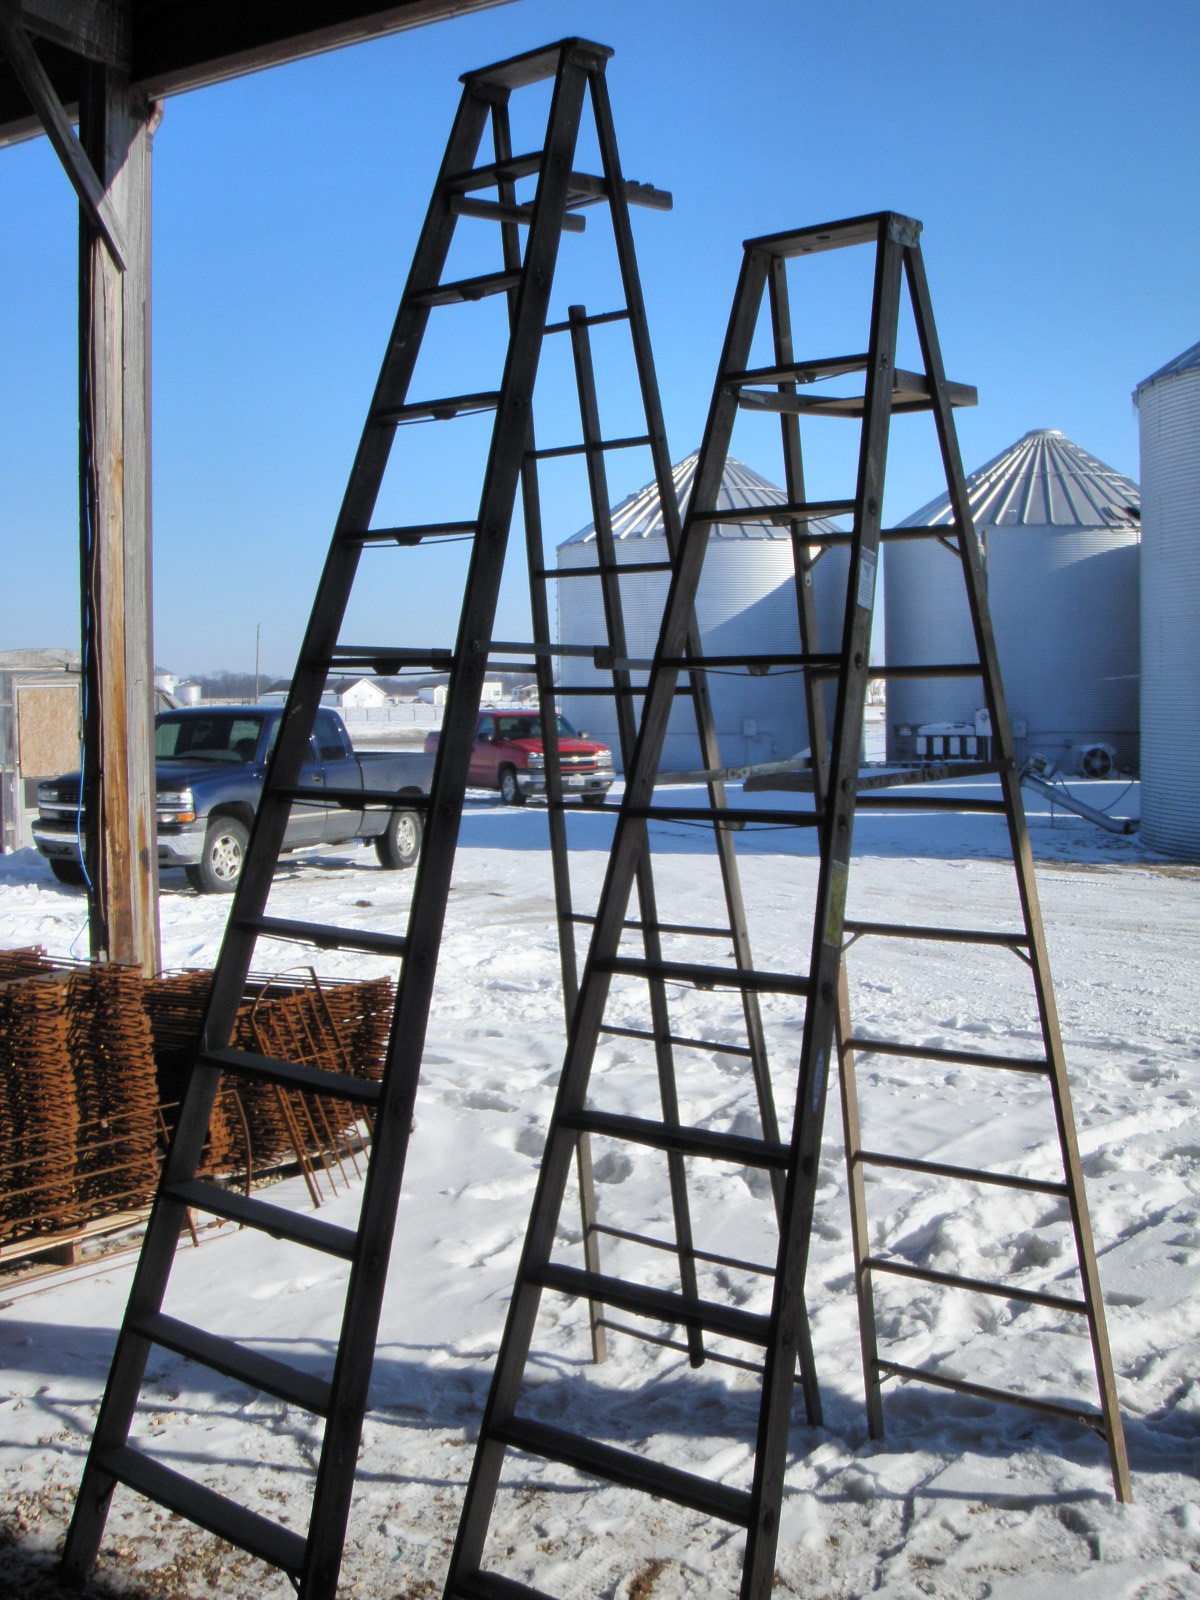 9 Step Tall Wooden Vintage Step Ladders